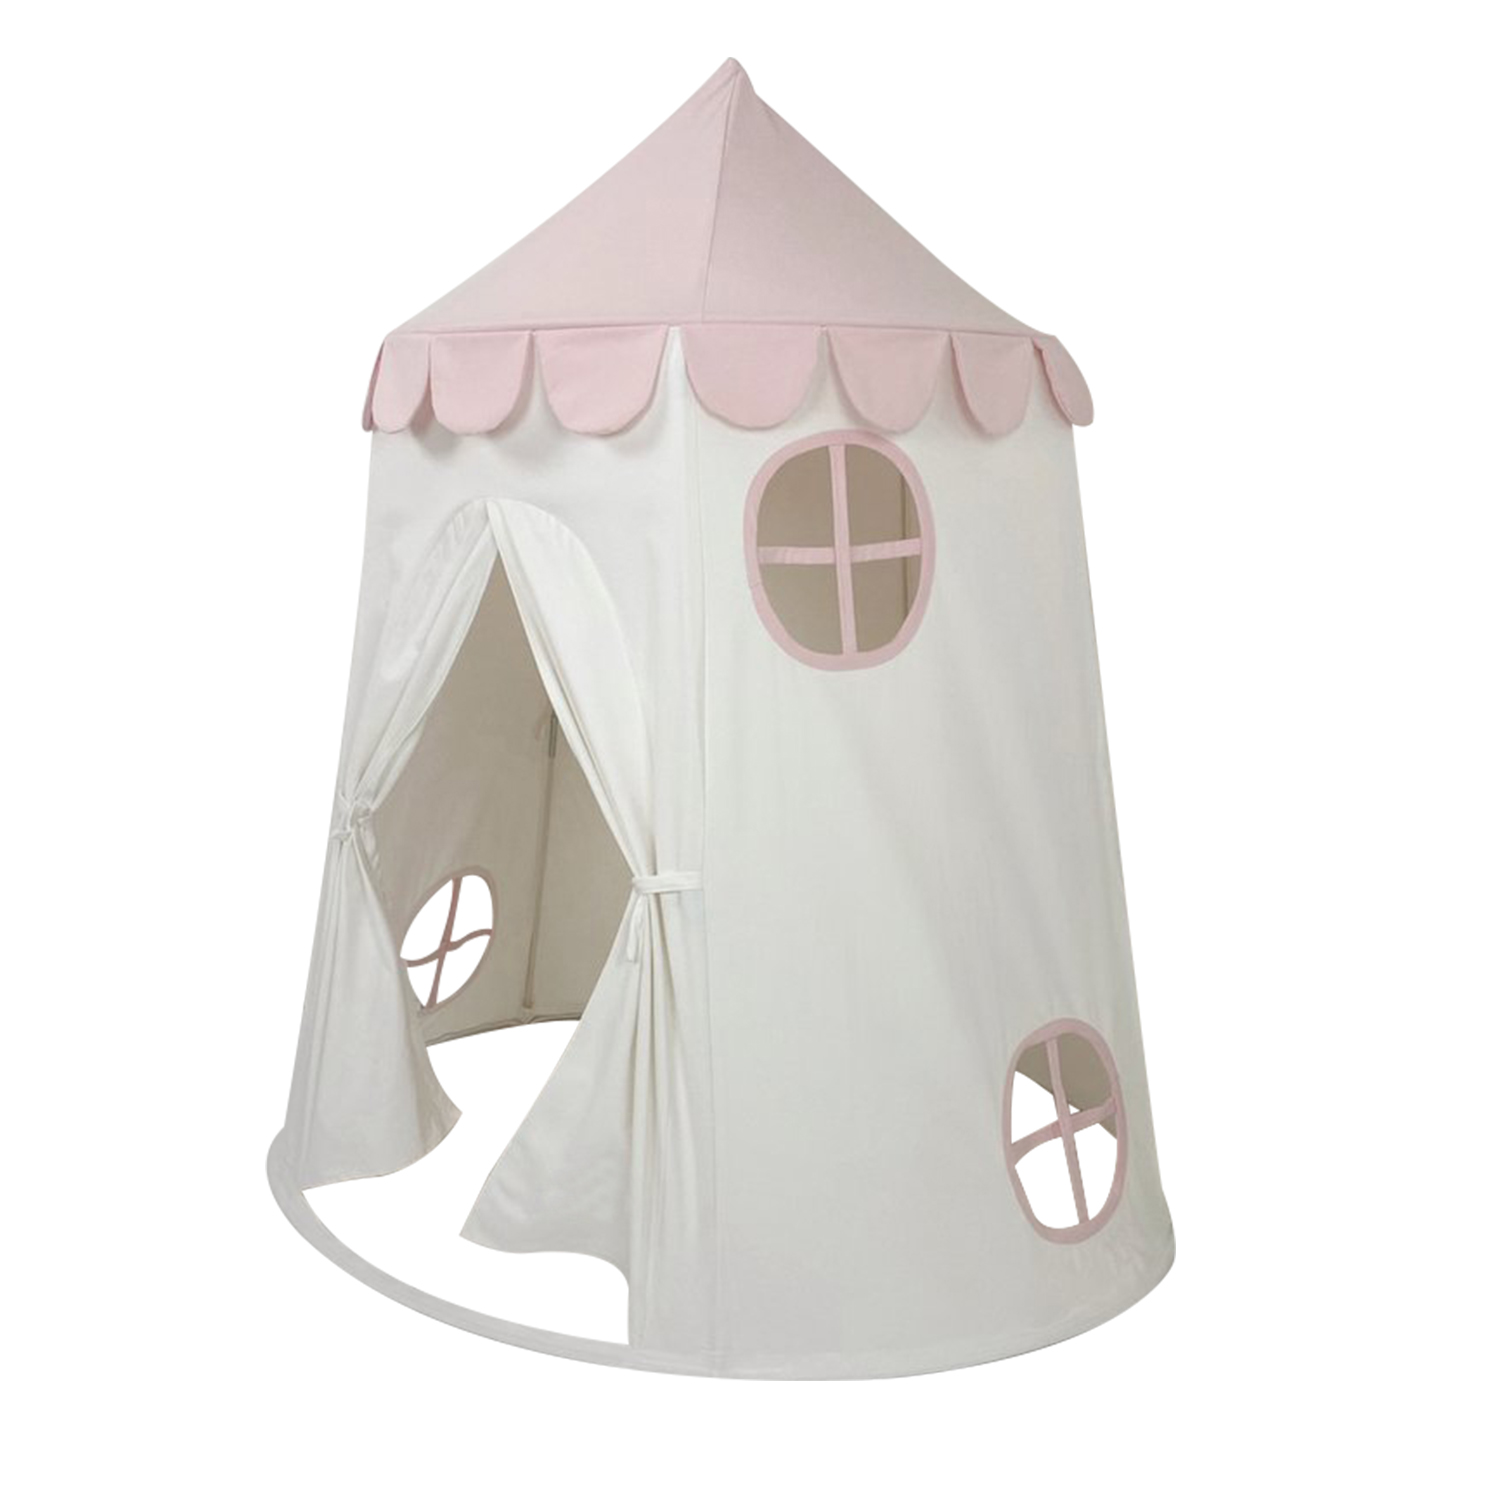 wholesale Pink 100% Cotton Canvas Kids Boys Girls Tent Outdoor Teepee for kids